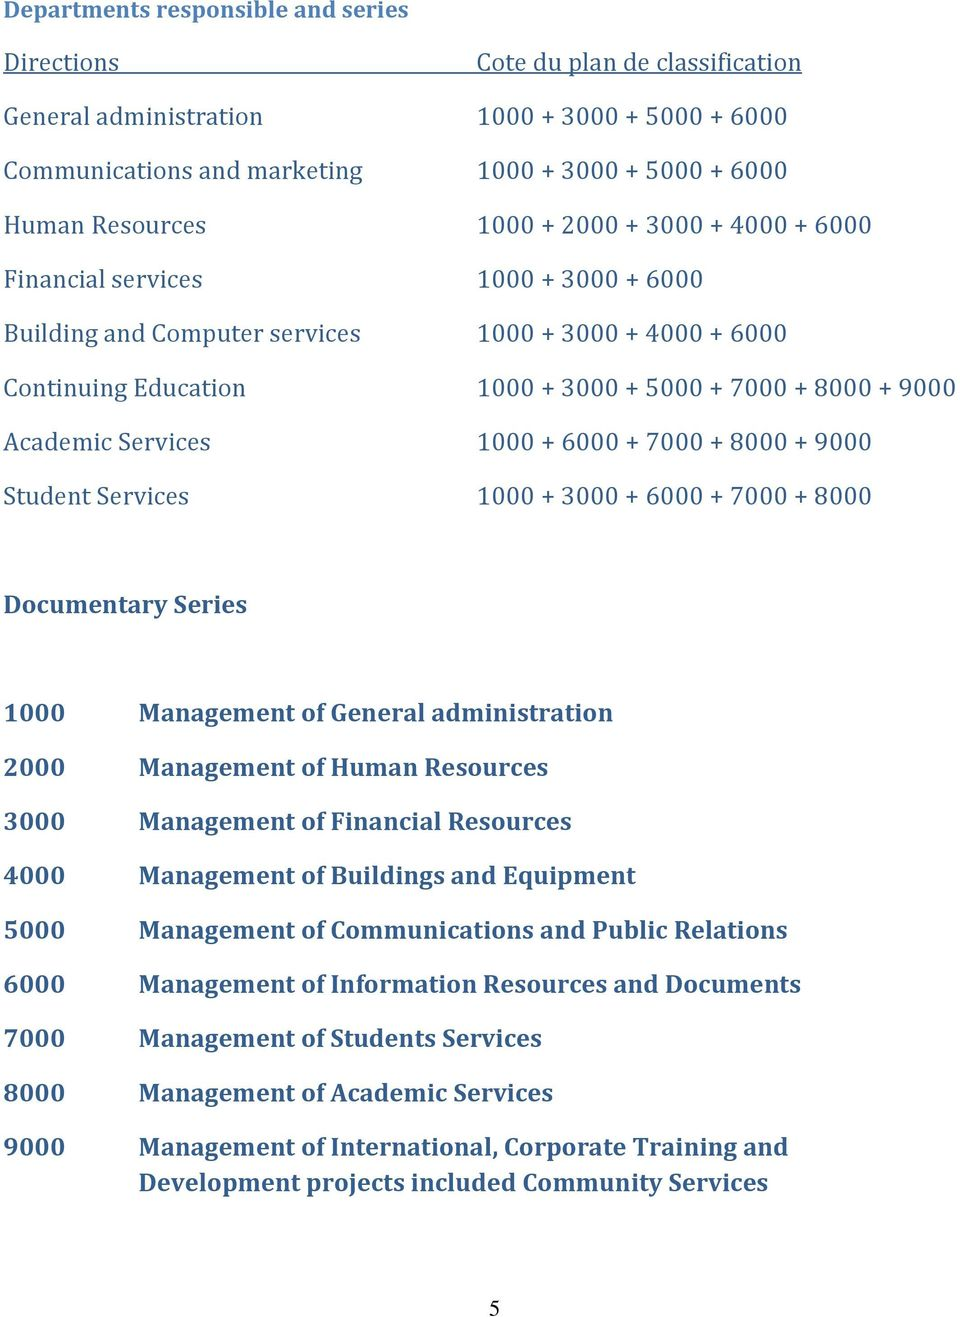 Services 1000 + 6000 + 7000 + 8000 + 9000 Student Services 1000 + 3000 + 6000 + 7000 + 8000 Documentary Series 1000 Management of General administration 2000 Management of Human Resources 3000